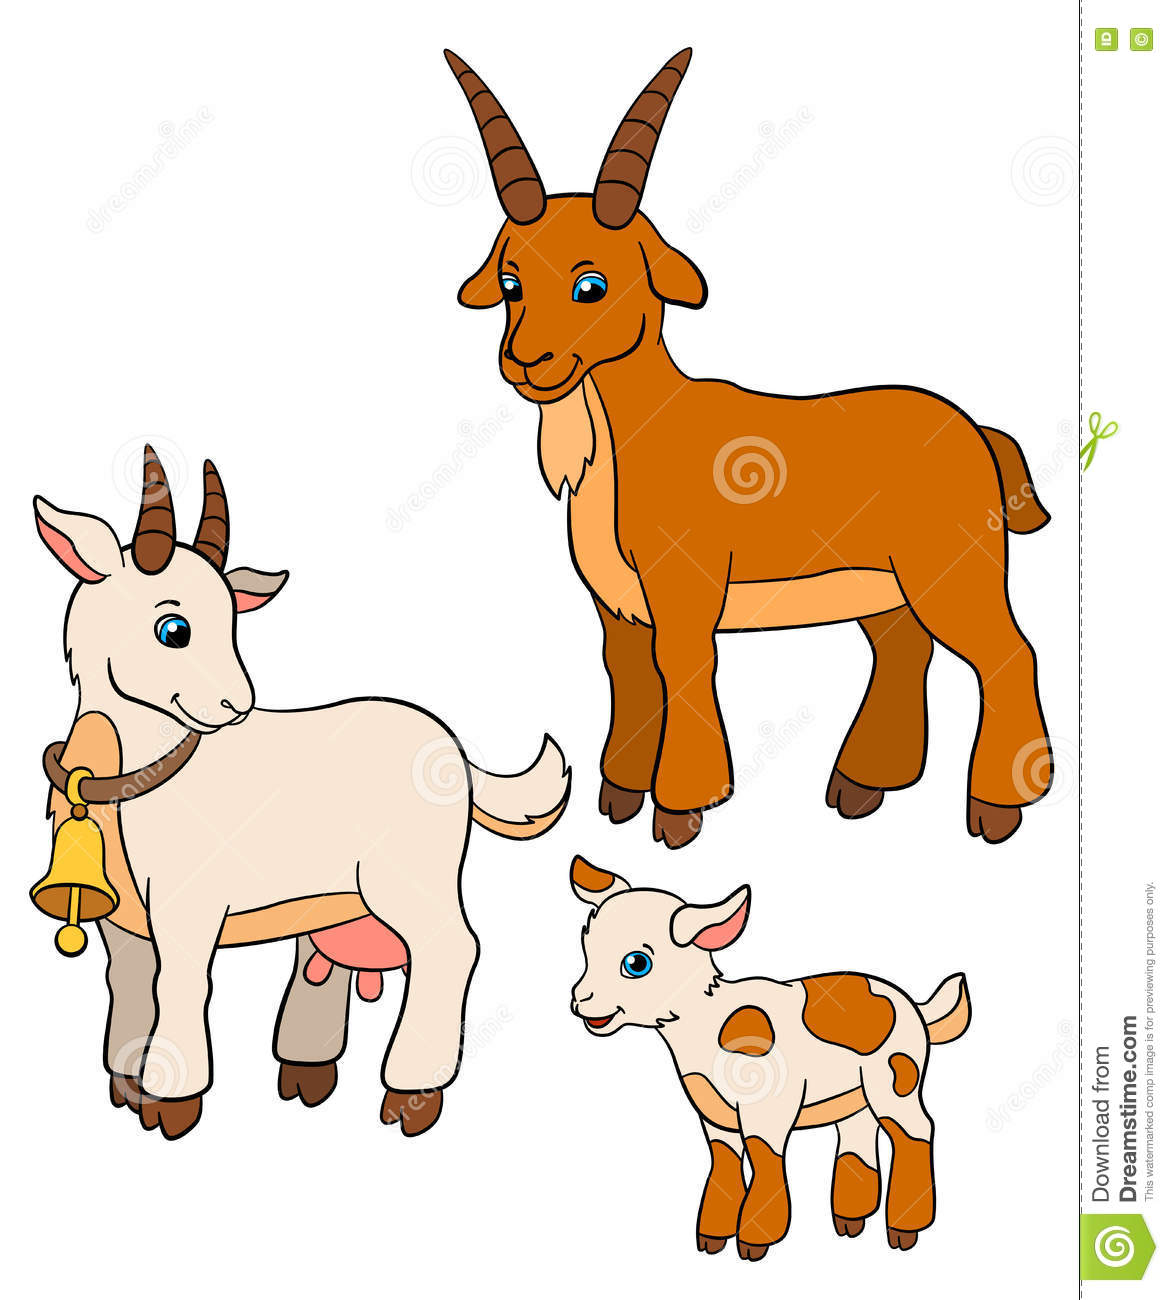 cartoon farm animals for kids goat family stock vector - Animals Pictures For Kids Free Download